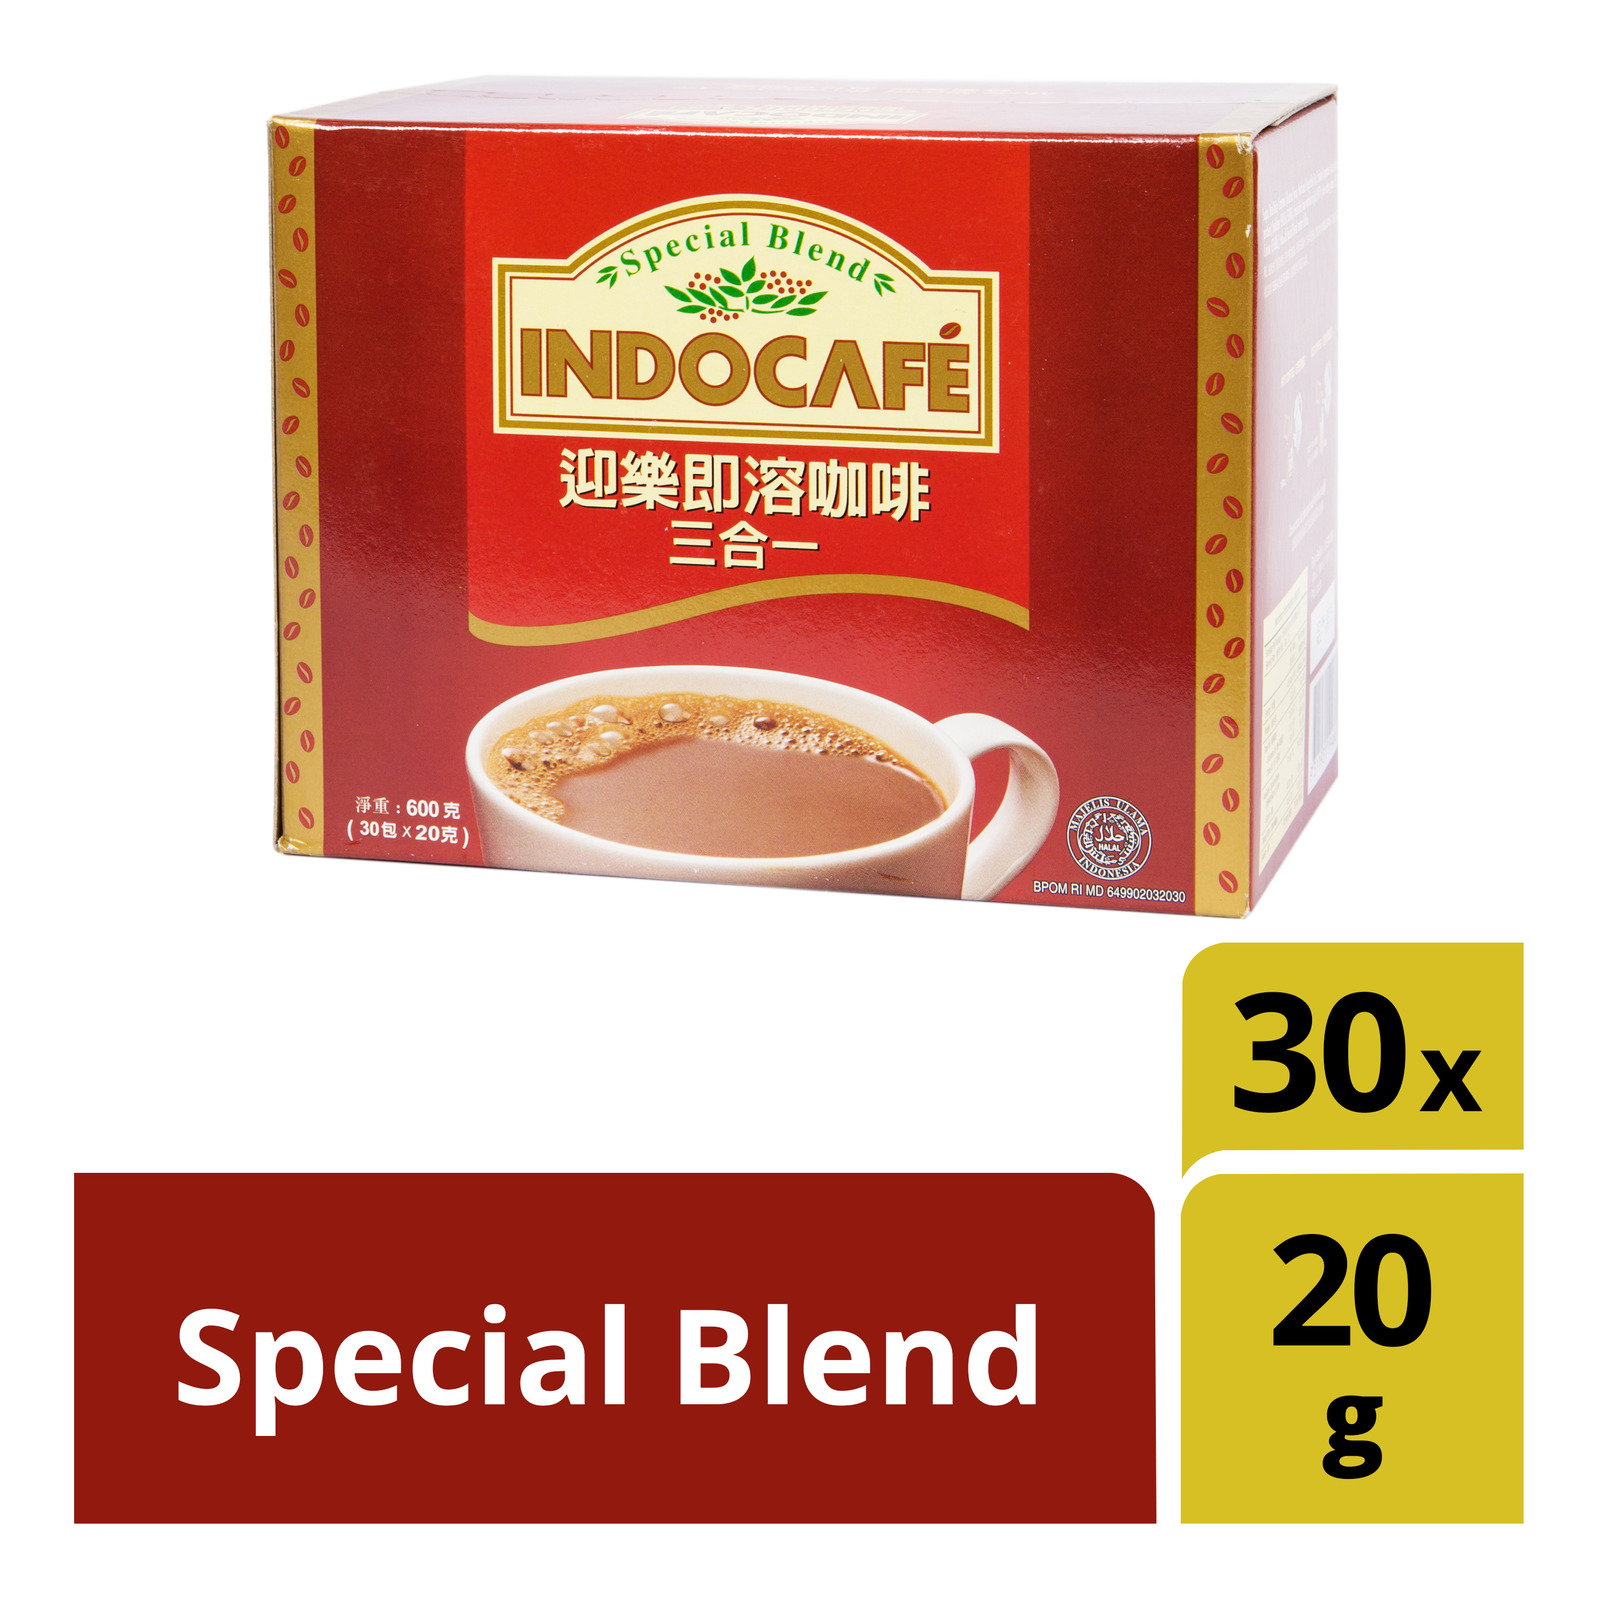 Indocafe 3 in 1 Instant Coffee Mix - Special Blend